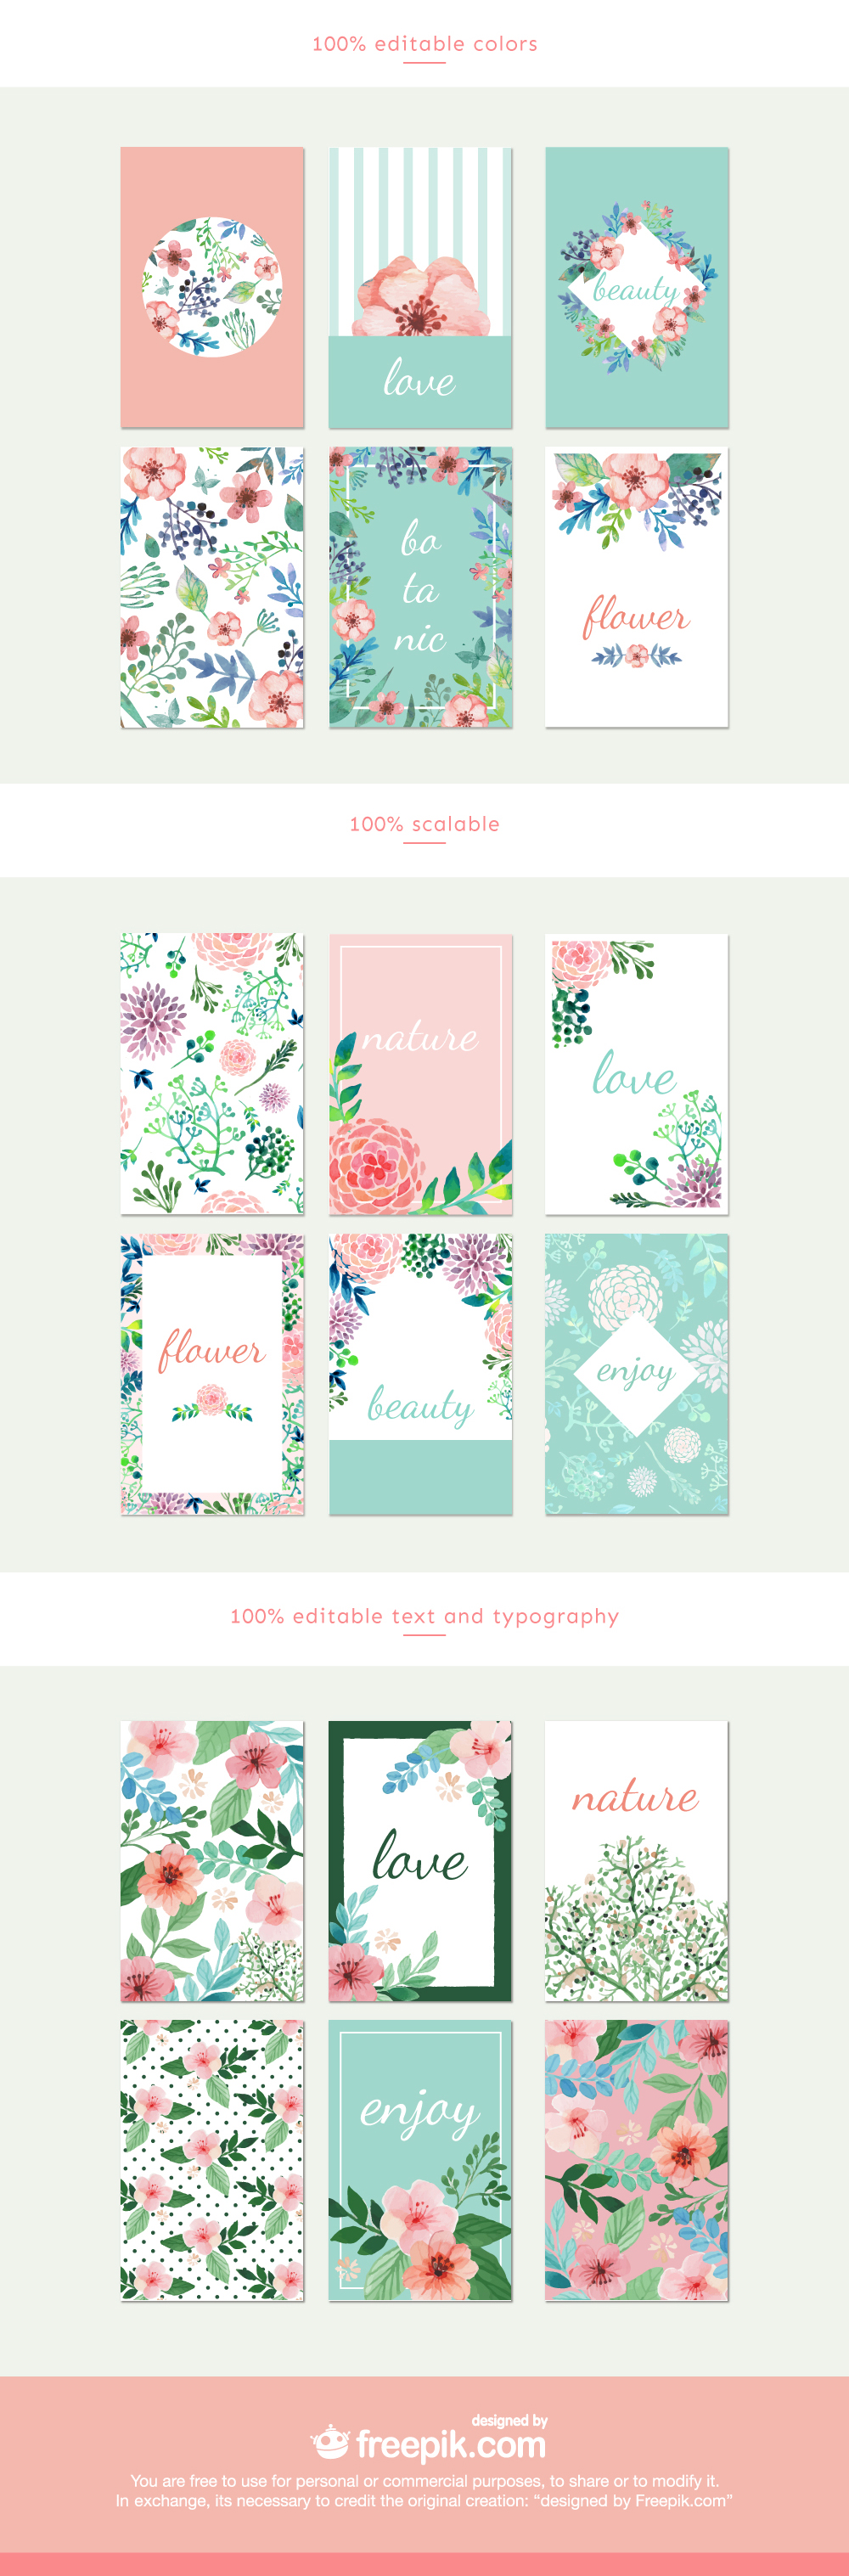 FREE_Watercolor_Flower _Cards_Collection